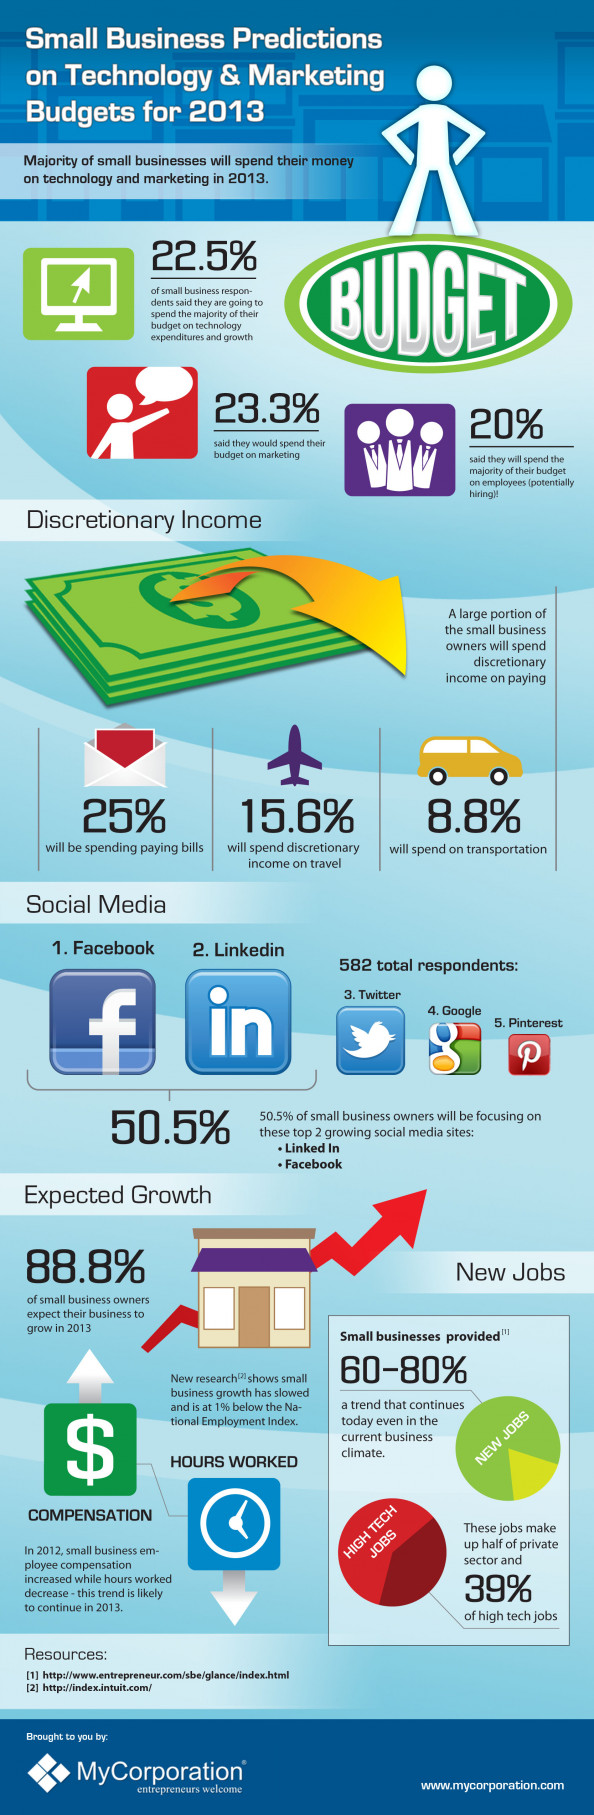 Small Business Predictions for 2013 Infographic